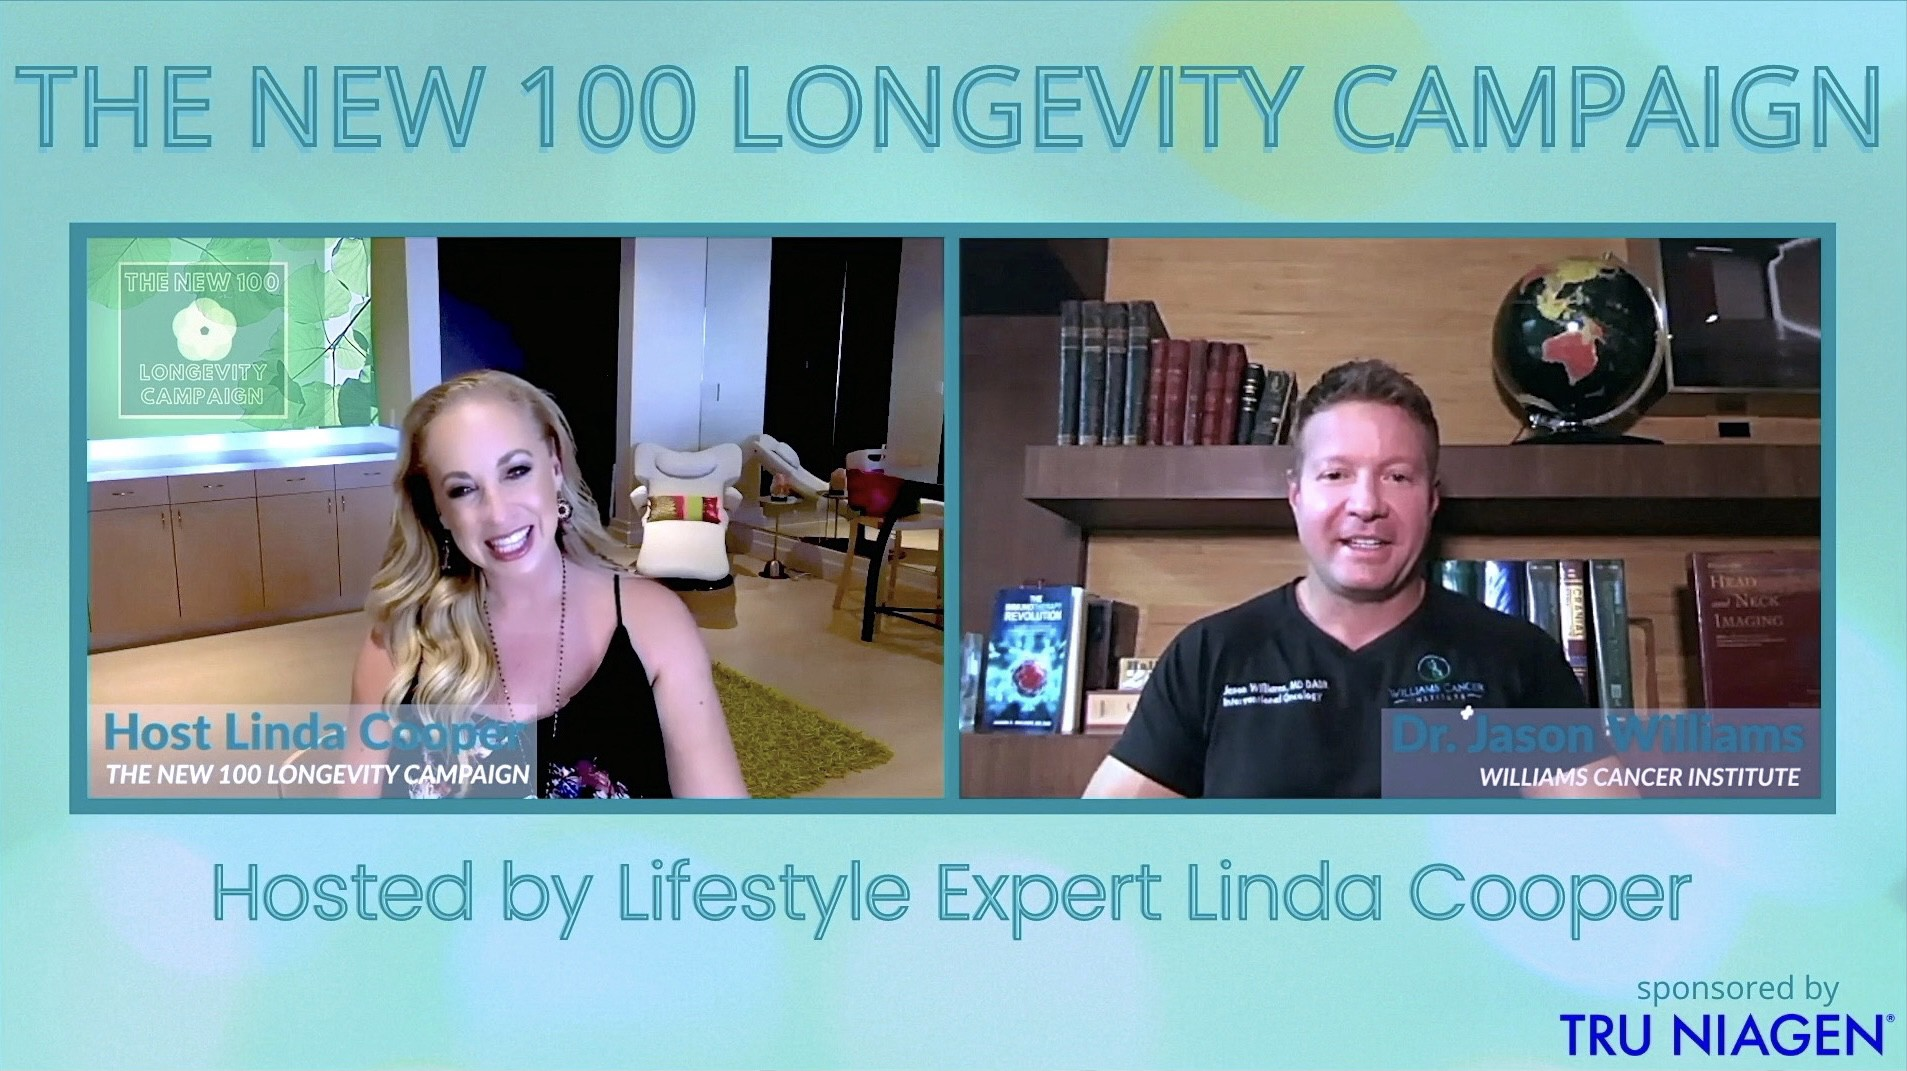 THE HIDDEN TRUTH ABOUT CANCER TREATMENT- EP6 THE NEW 100 LONGEVITY CAMPAIGN